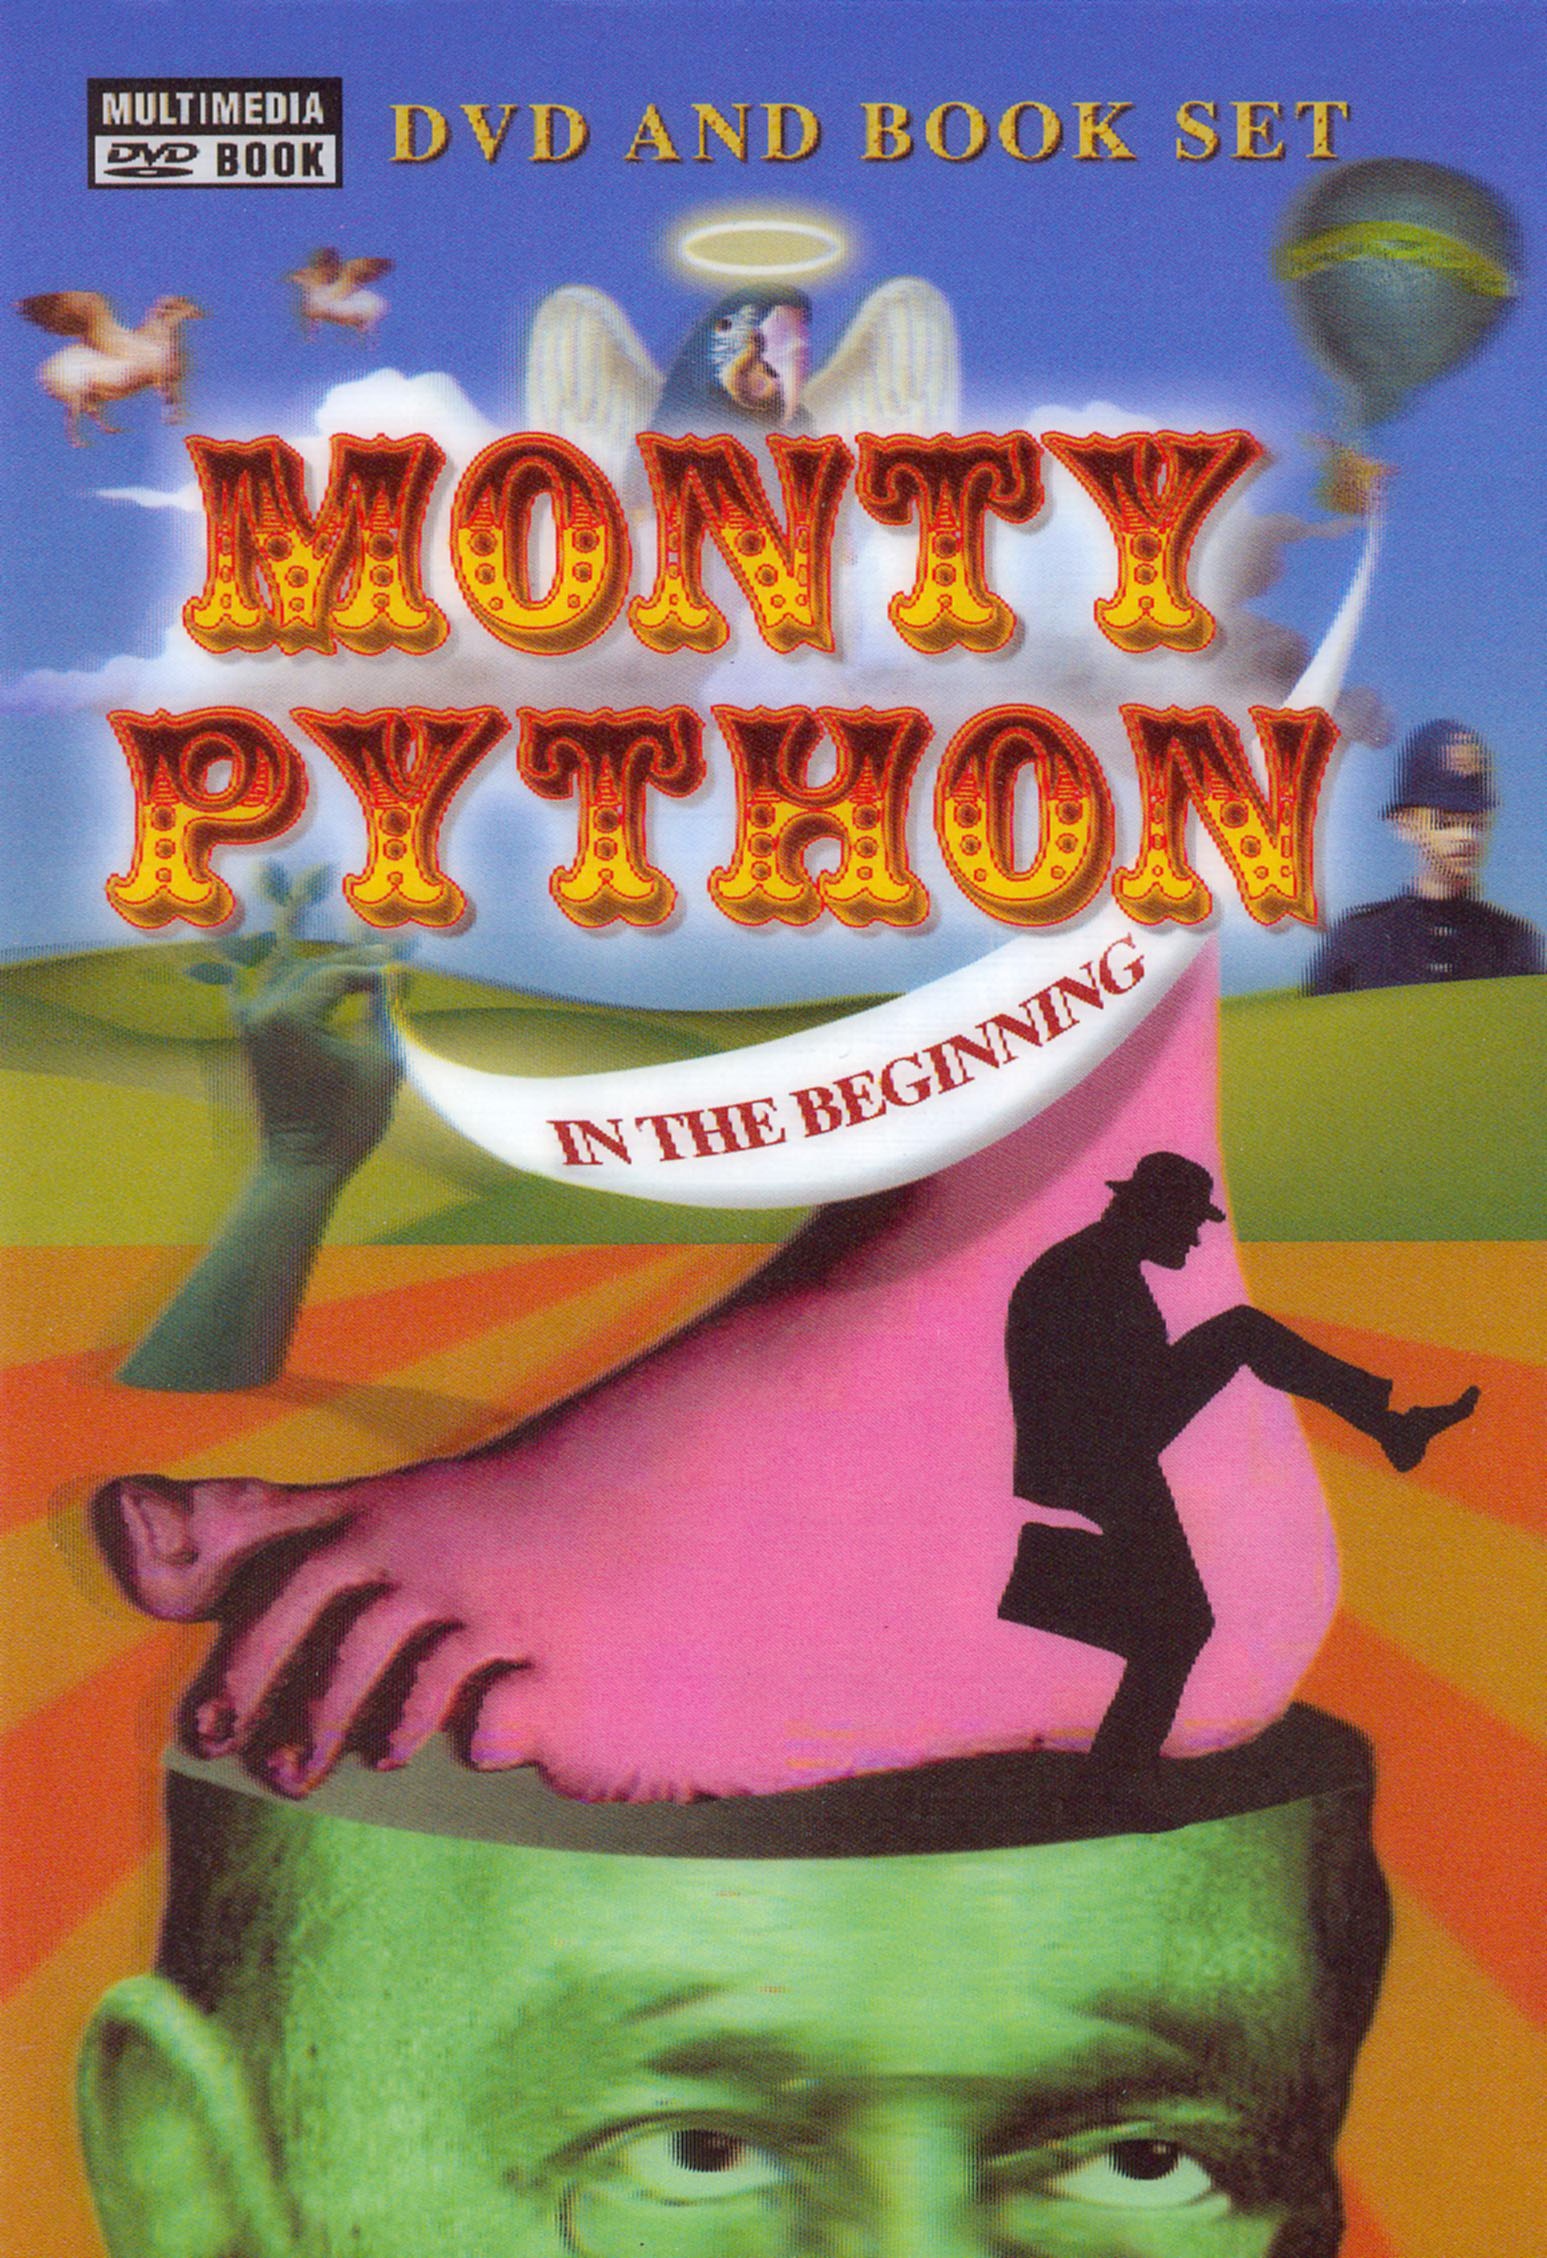 Monty Python: Critical Review - In the Beginning